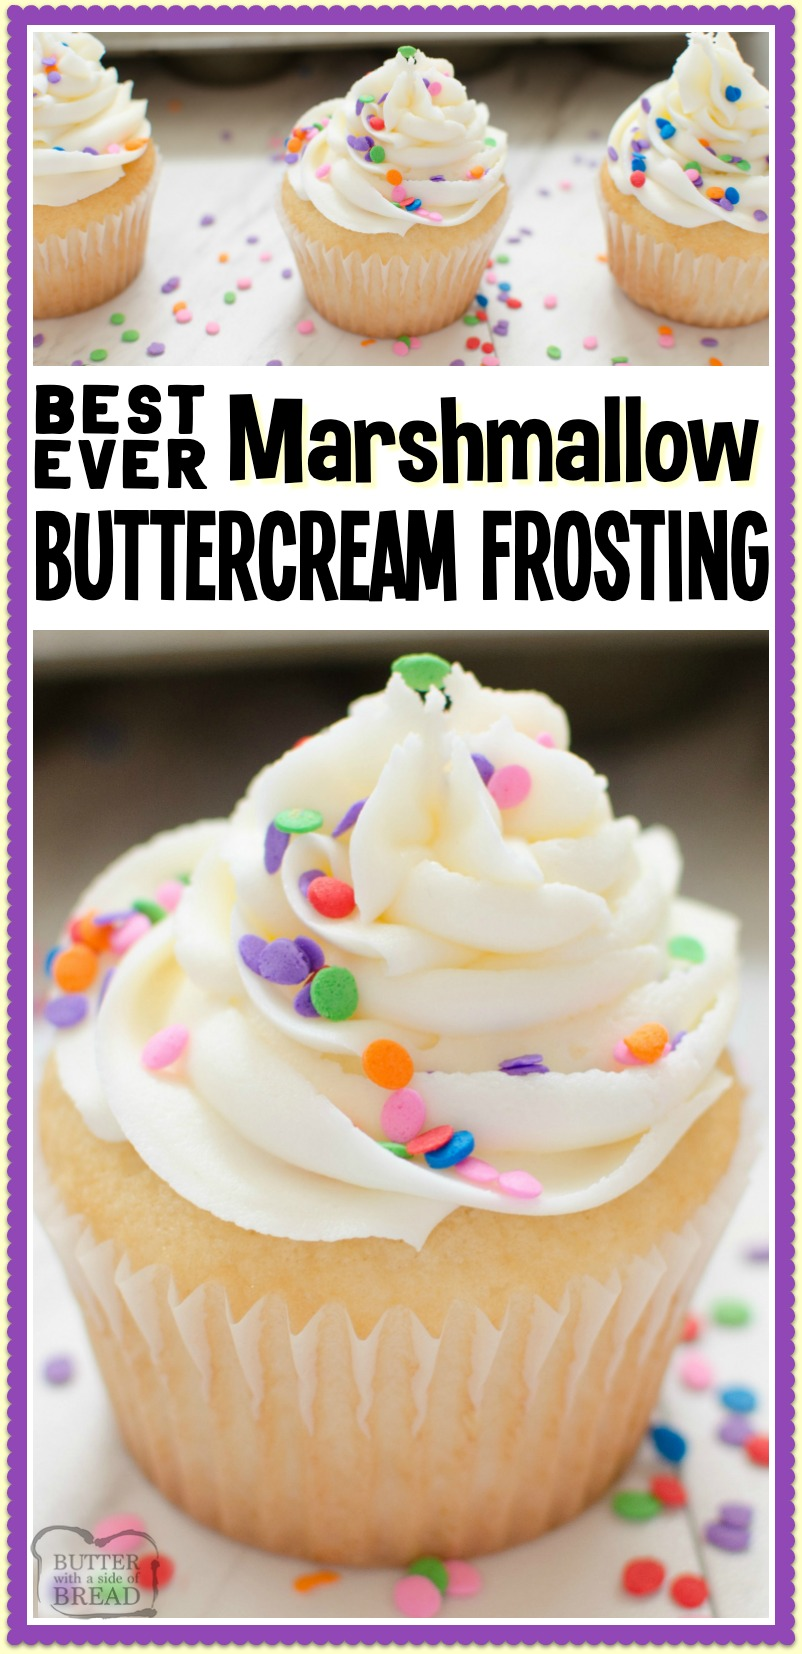 Best Ever Marshmallow Buttercream Frosting is the most delicious homemade buttercream frosting recipe you'll ever taste! Made in minutes with just 5 ingredients; everyone adores this marshmallow buttercream recipe. #frosting #buttercream #butter #marshmallow #baking #dessert #recipe from BUTTER WITH A SIDE OF BREAD